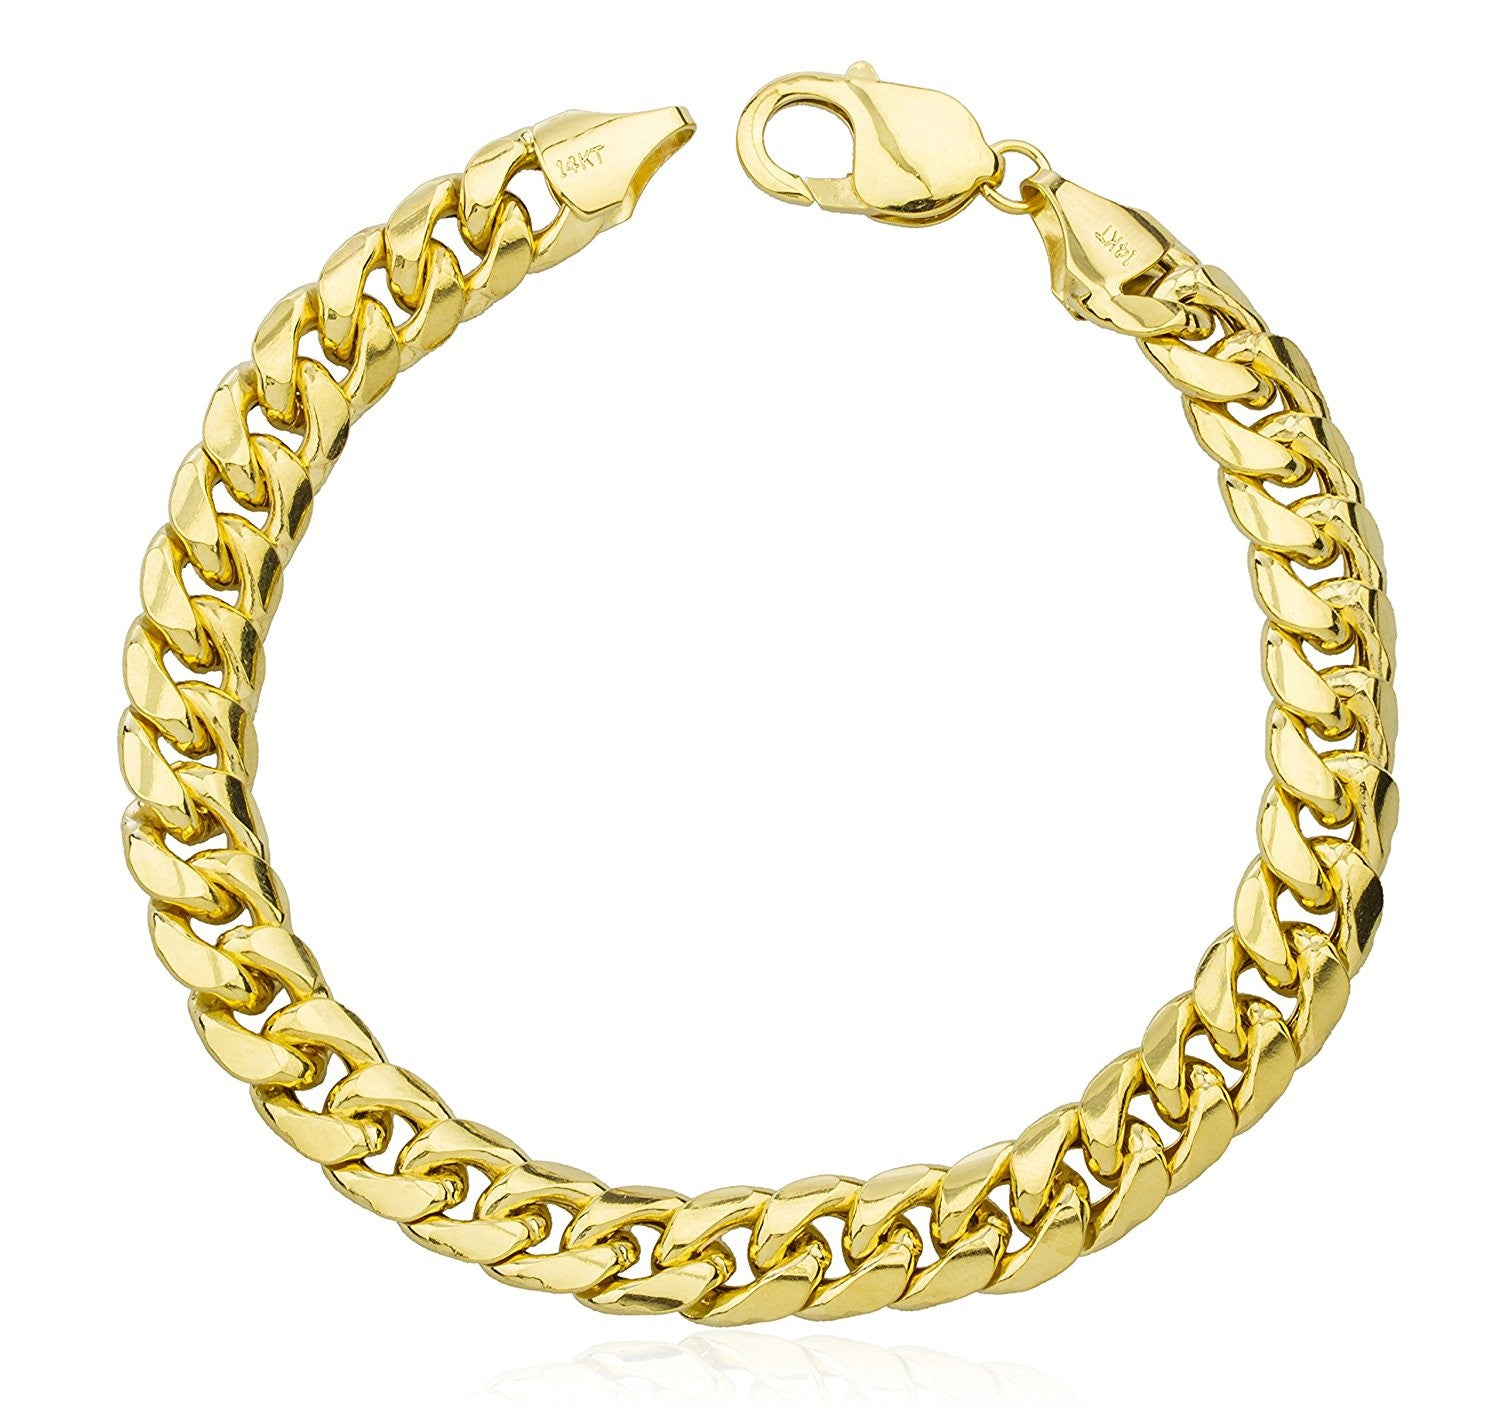 inch new hollow image yellow gold bracelet jewellery figaro link